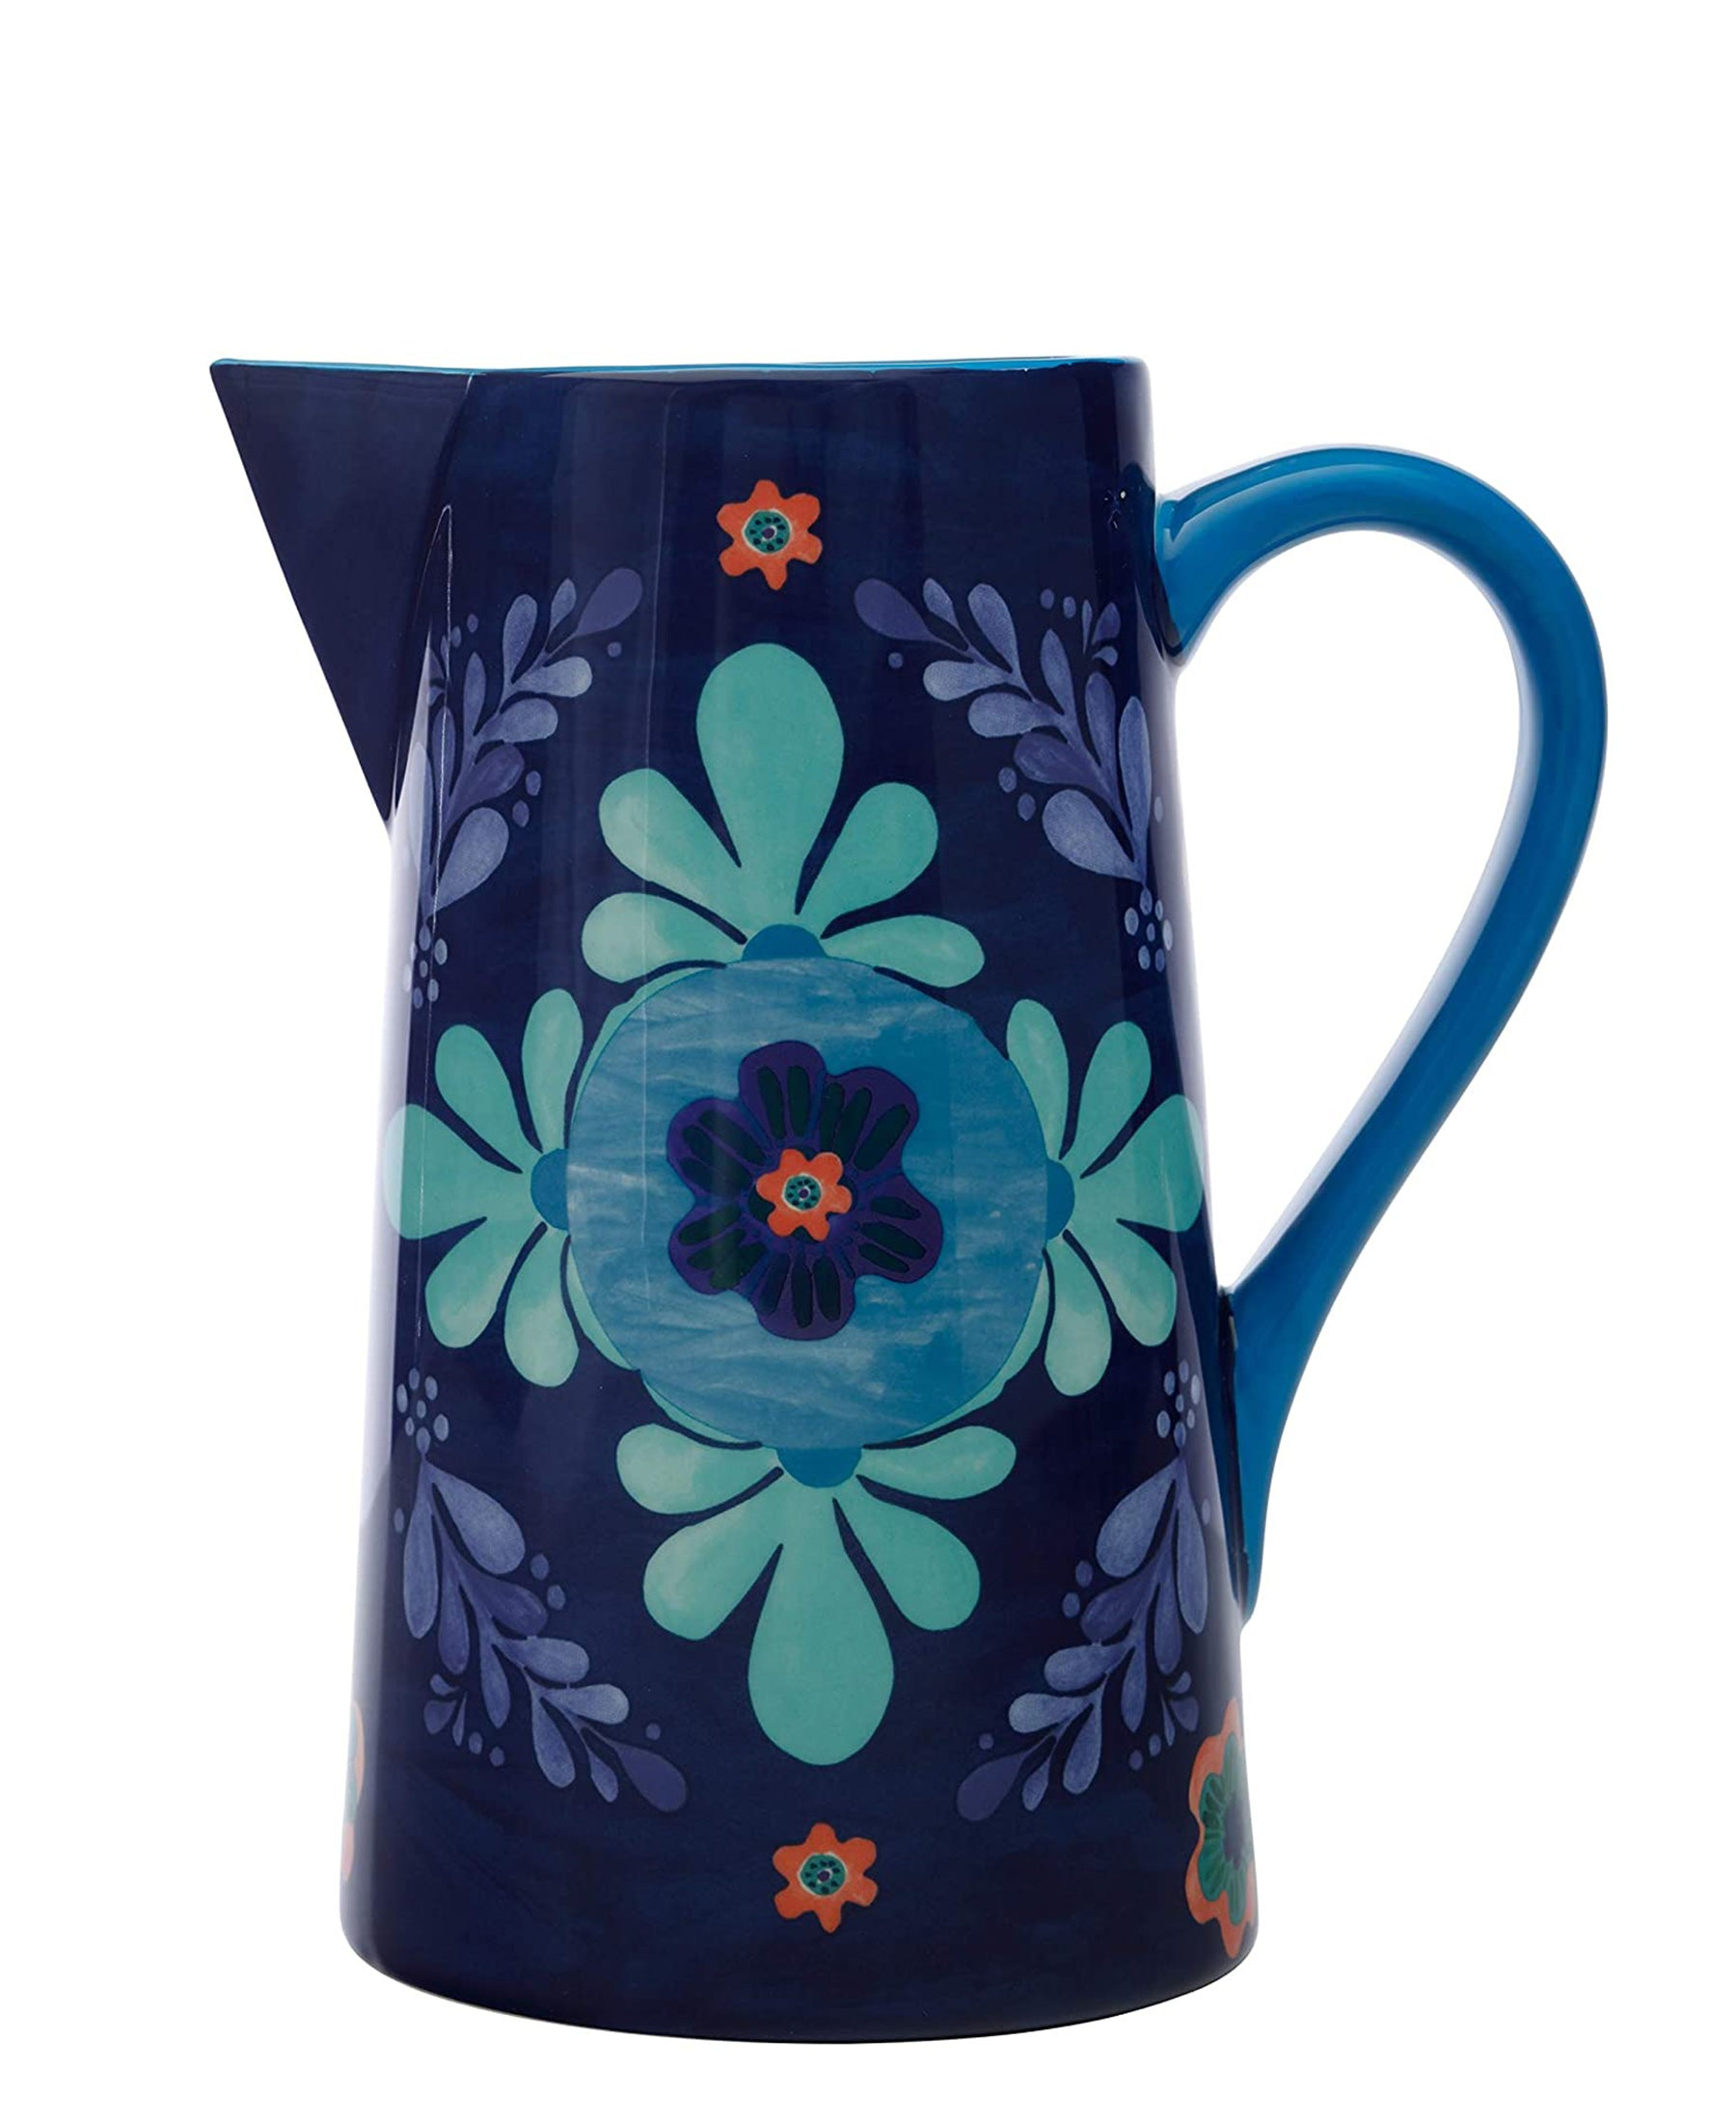 Maxwell & Williams Majolica Pitcher 2.4L - Blue